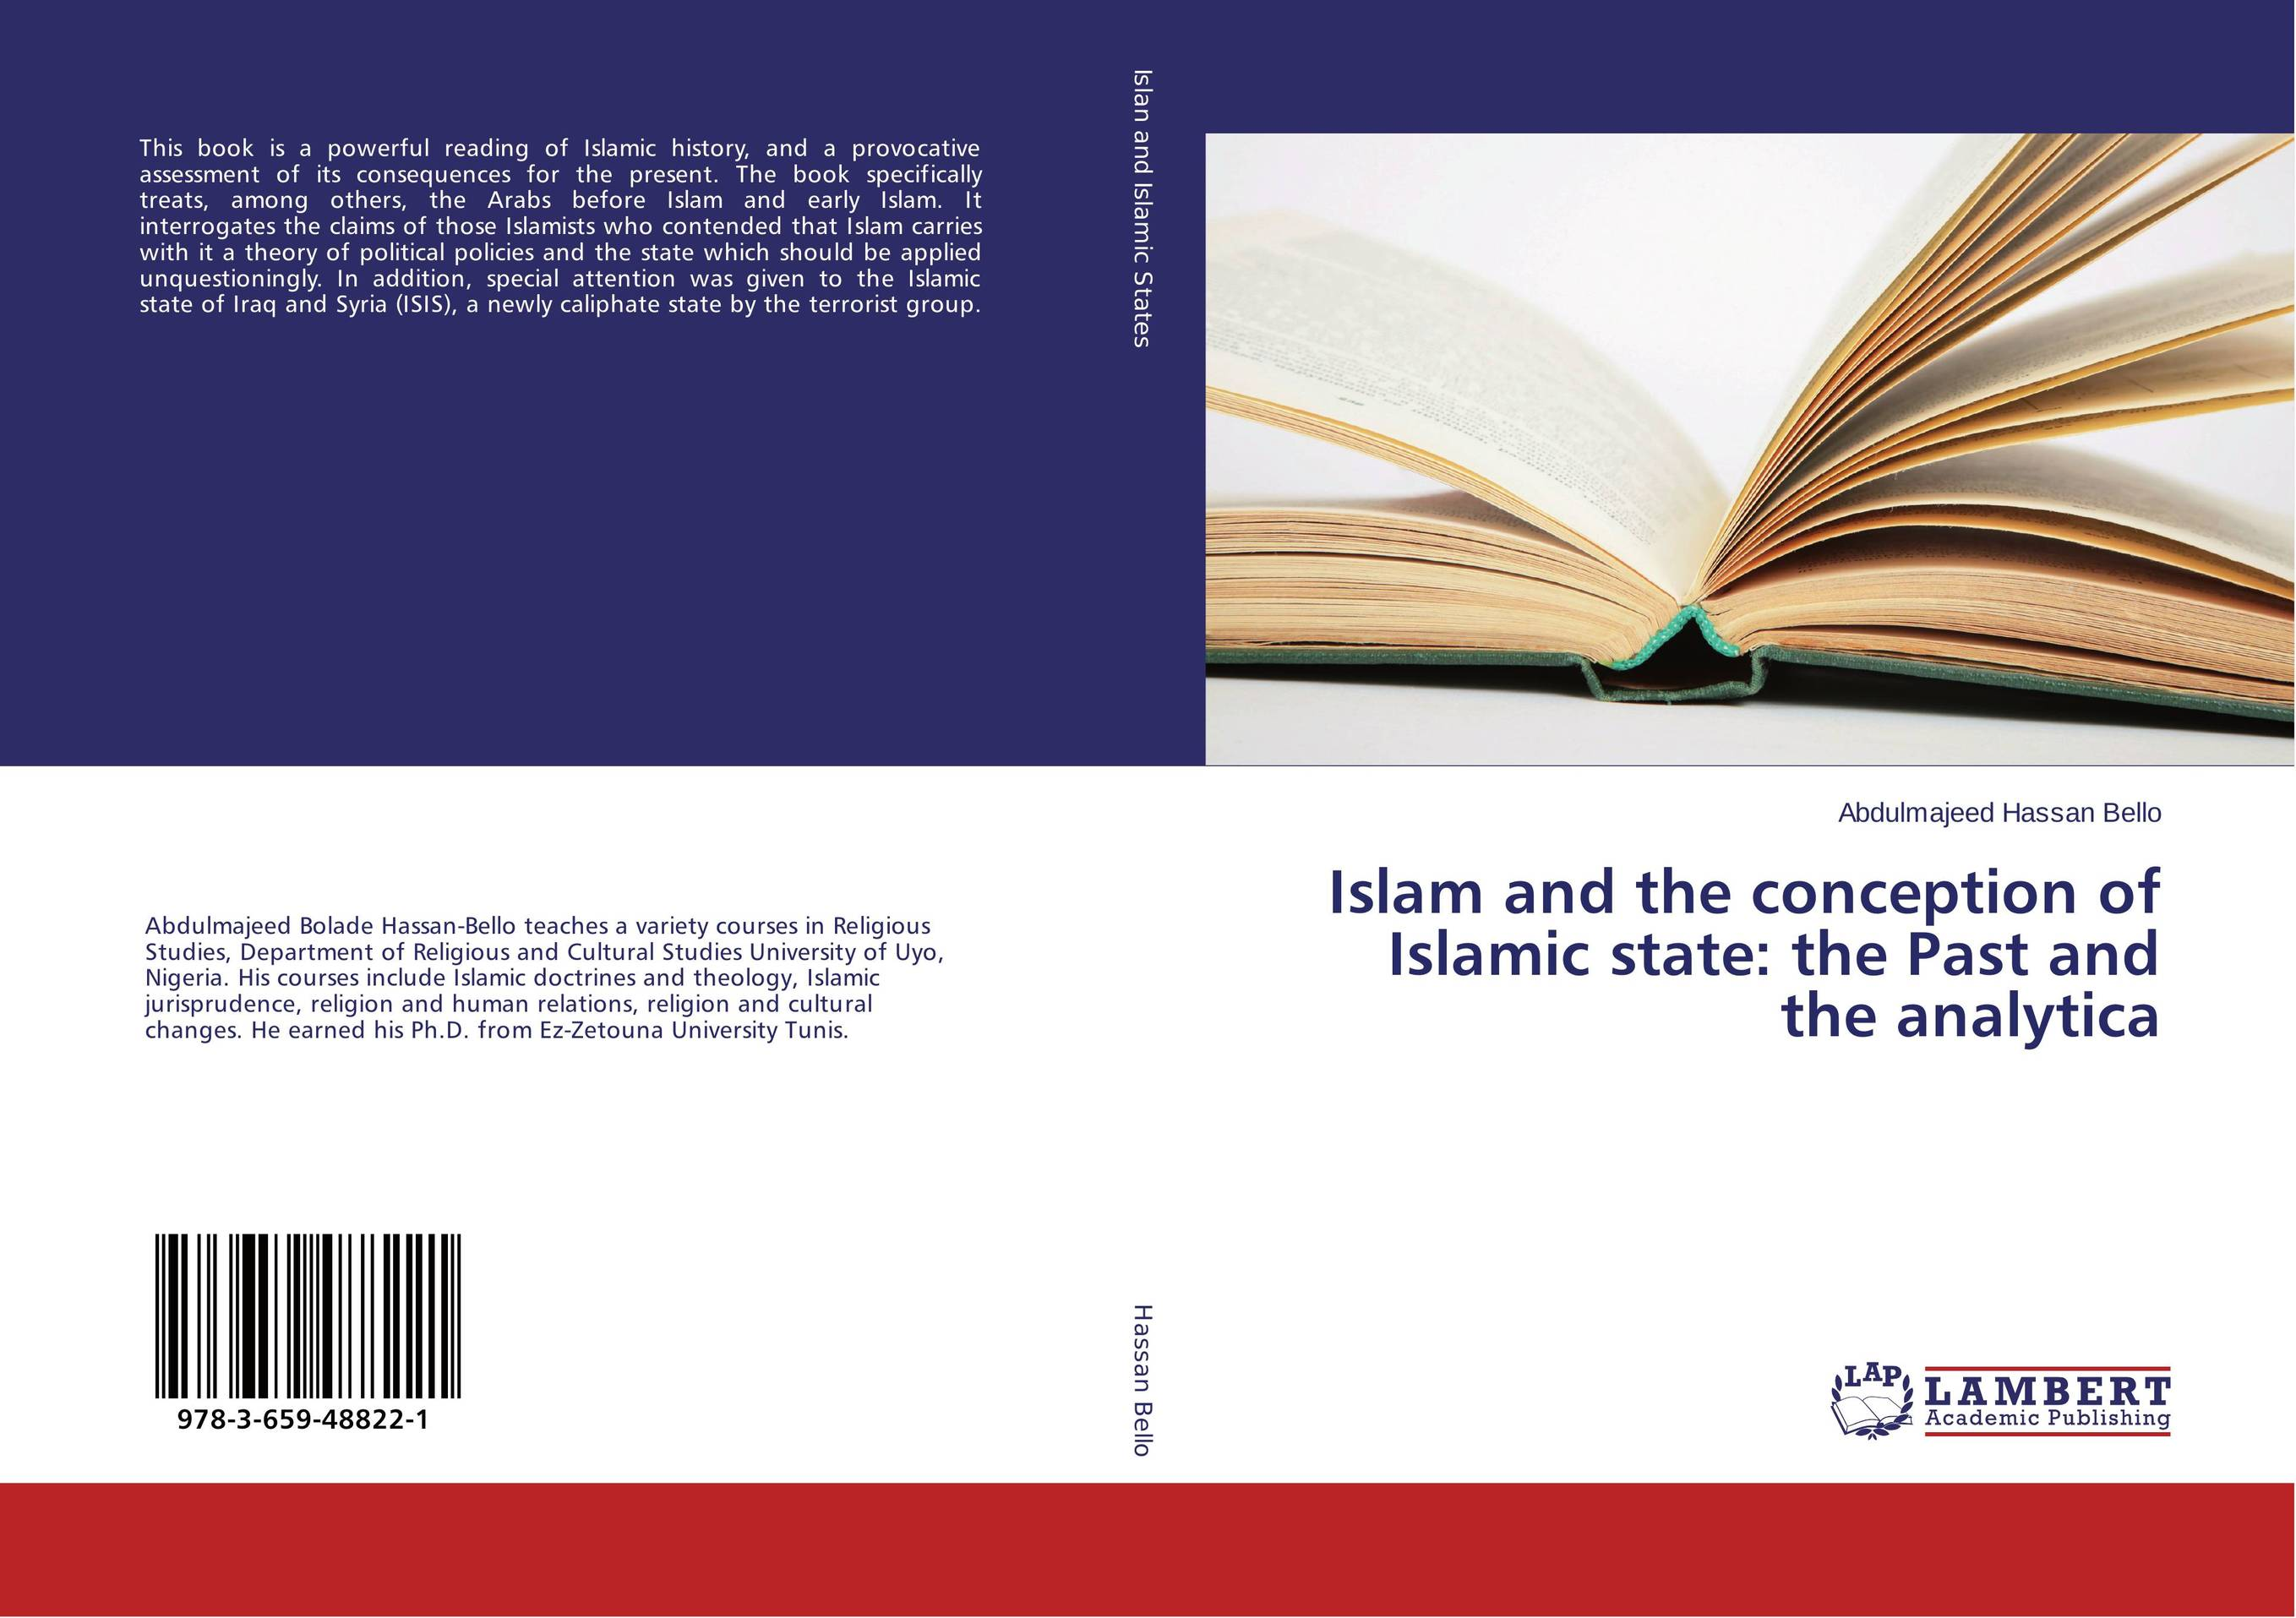 9783659488221 Islam and the conception of Islamic state the Pasthe analytica